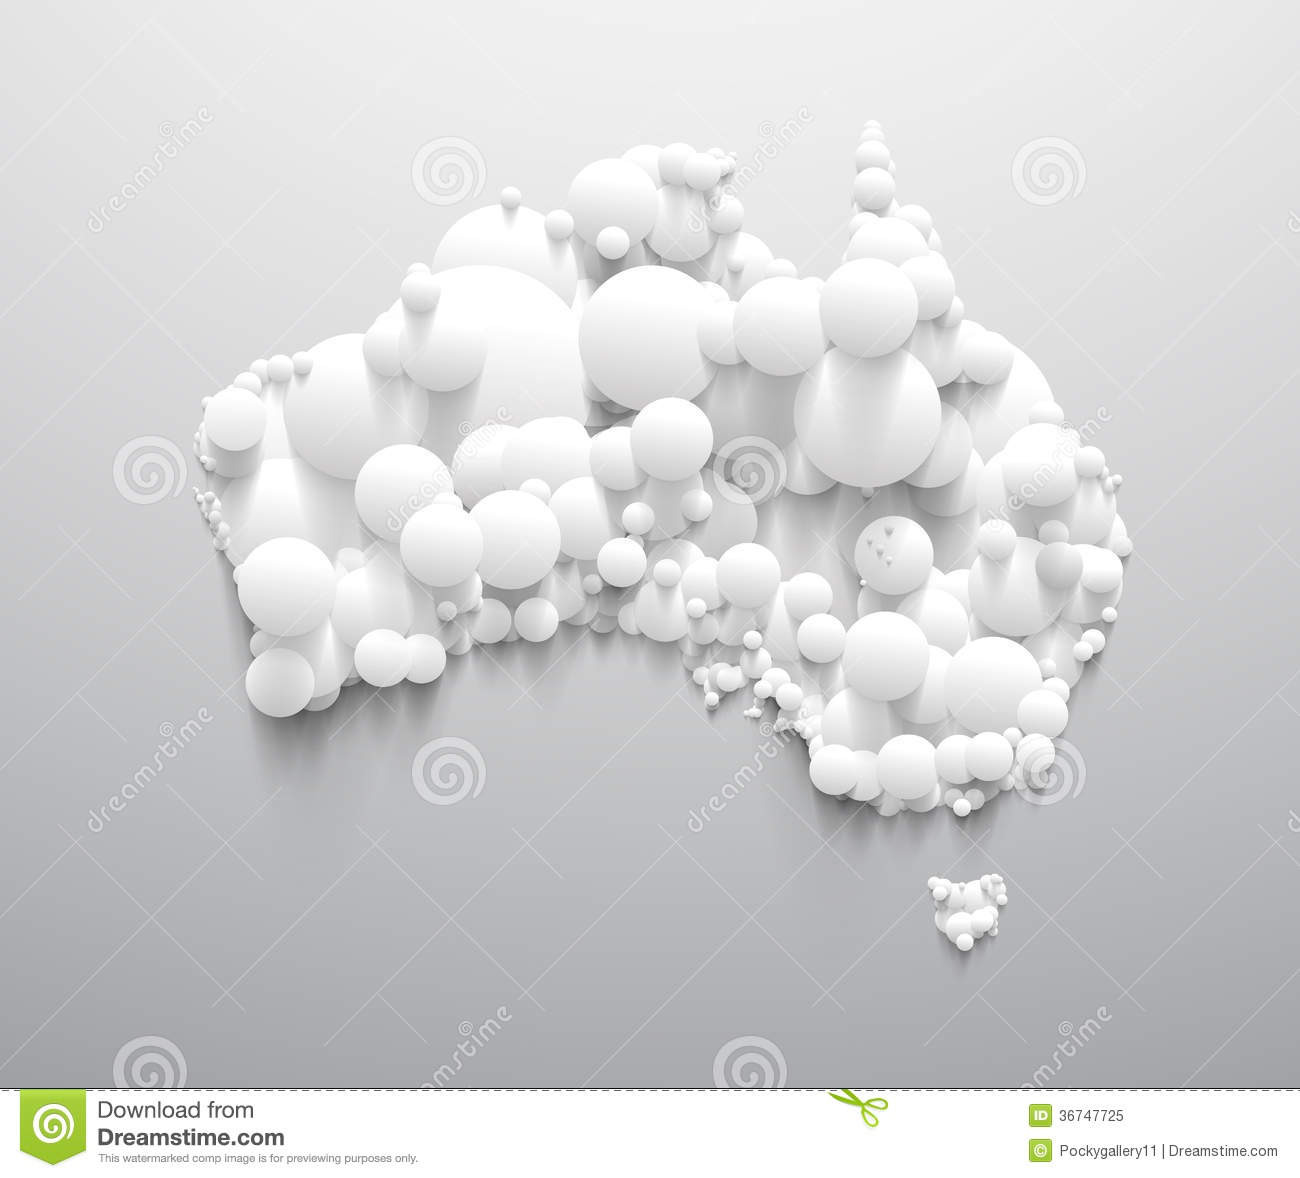 Abstract Australia Map With White Circle Royalty Free